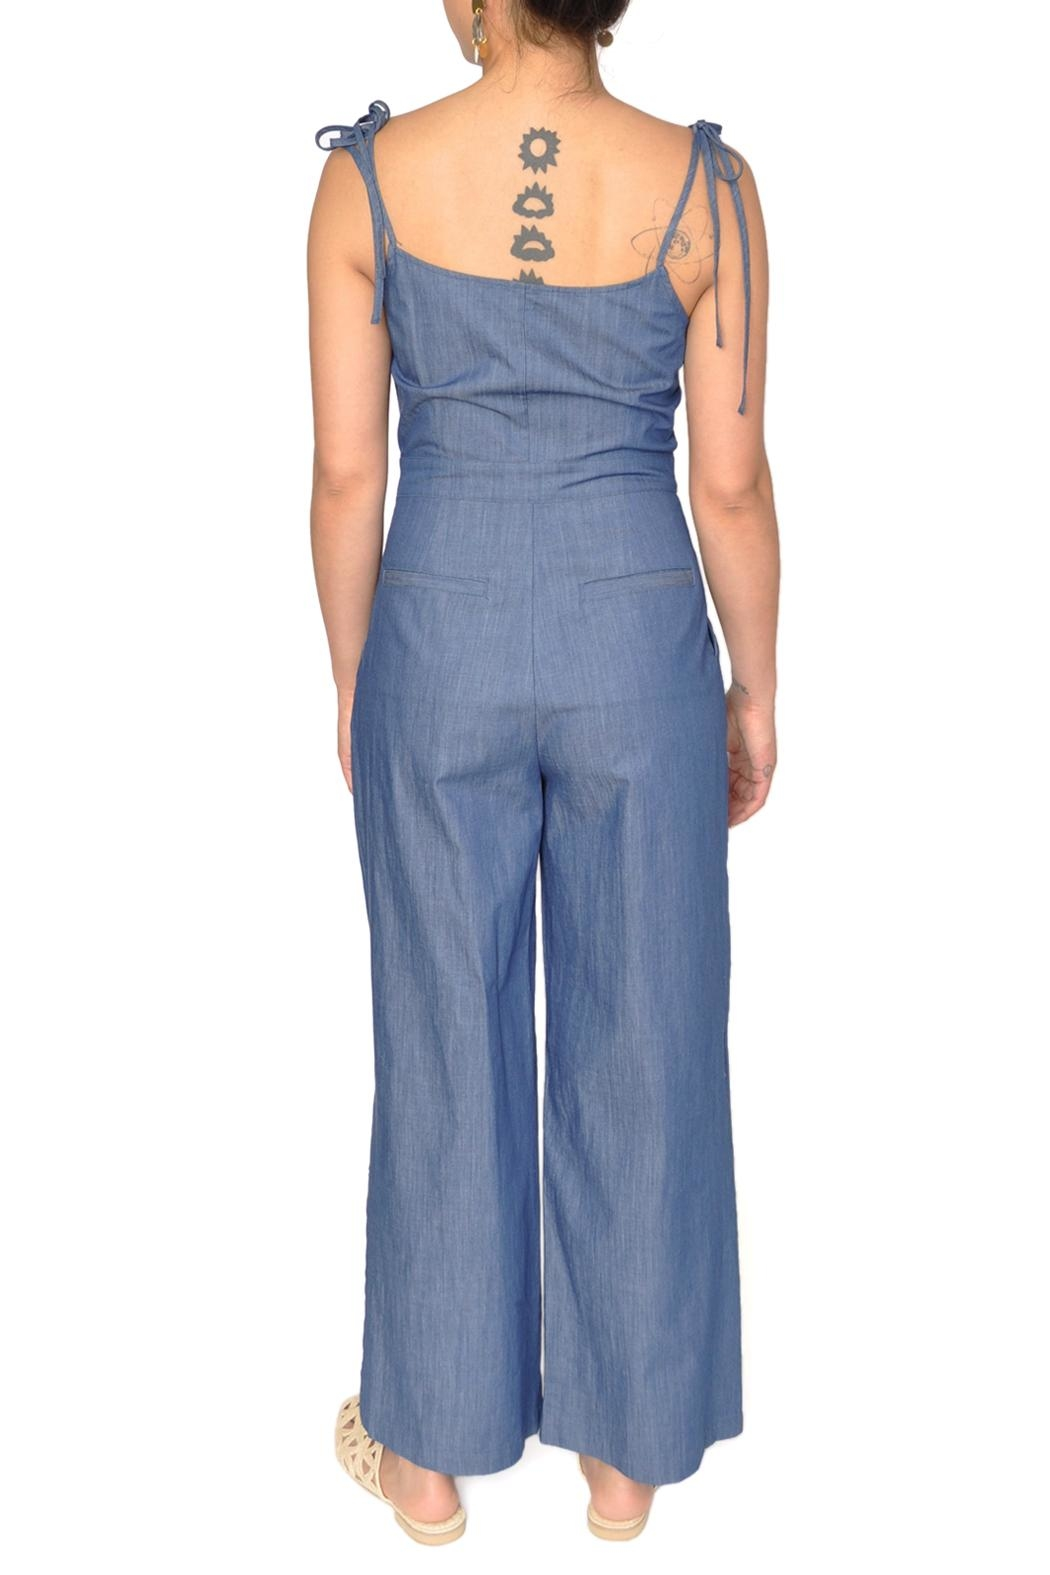 EVIDNT Chambray Denim Jumpsuit - Side Cropped Image